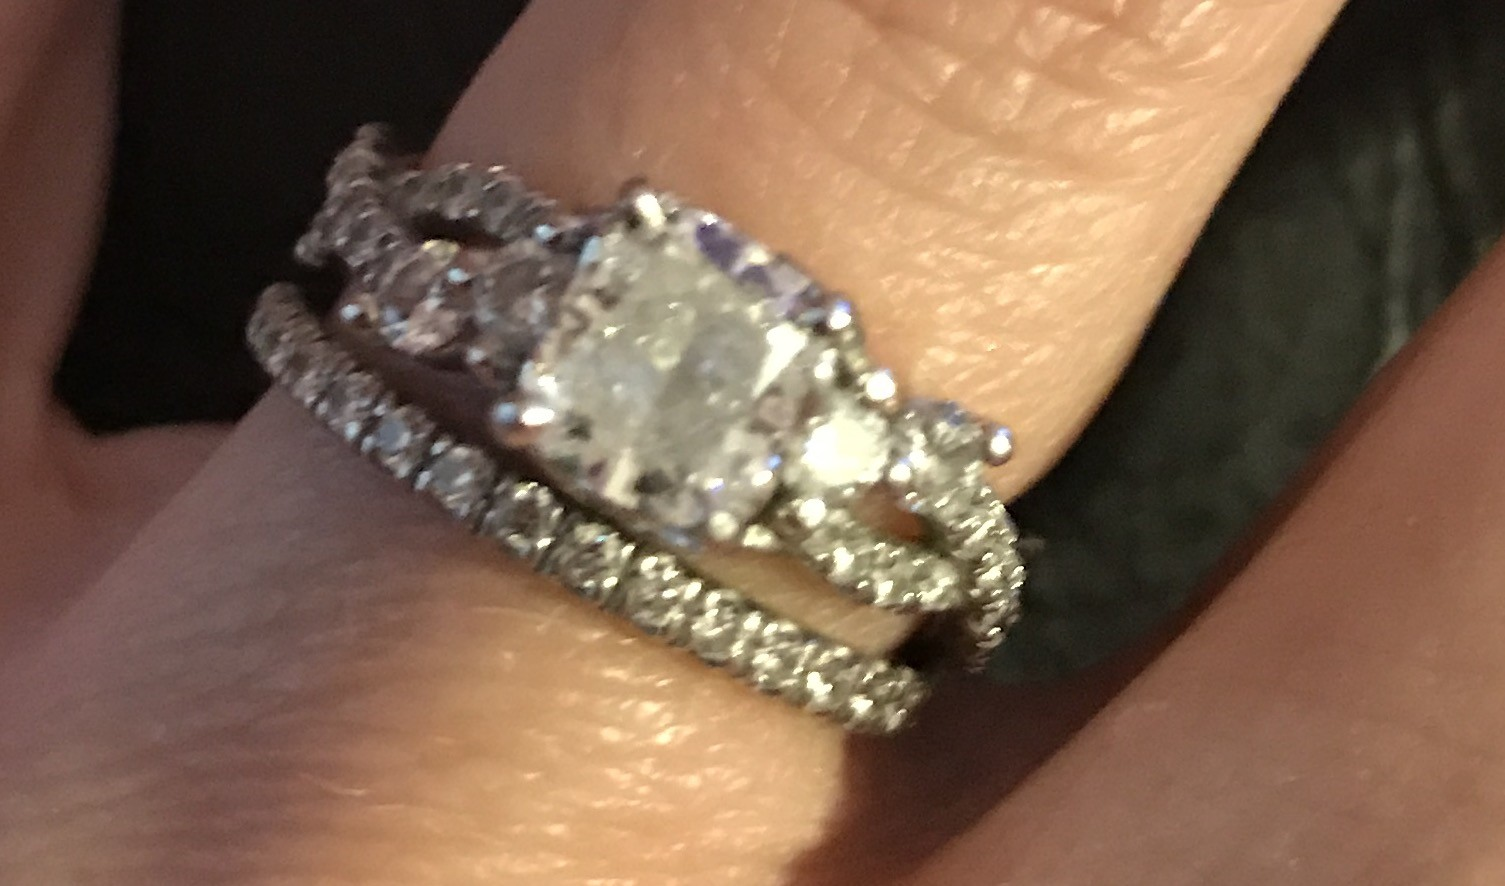 1.01 Monique Lhuillier Twist Custom Designed Diamond Engagement Ring